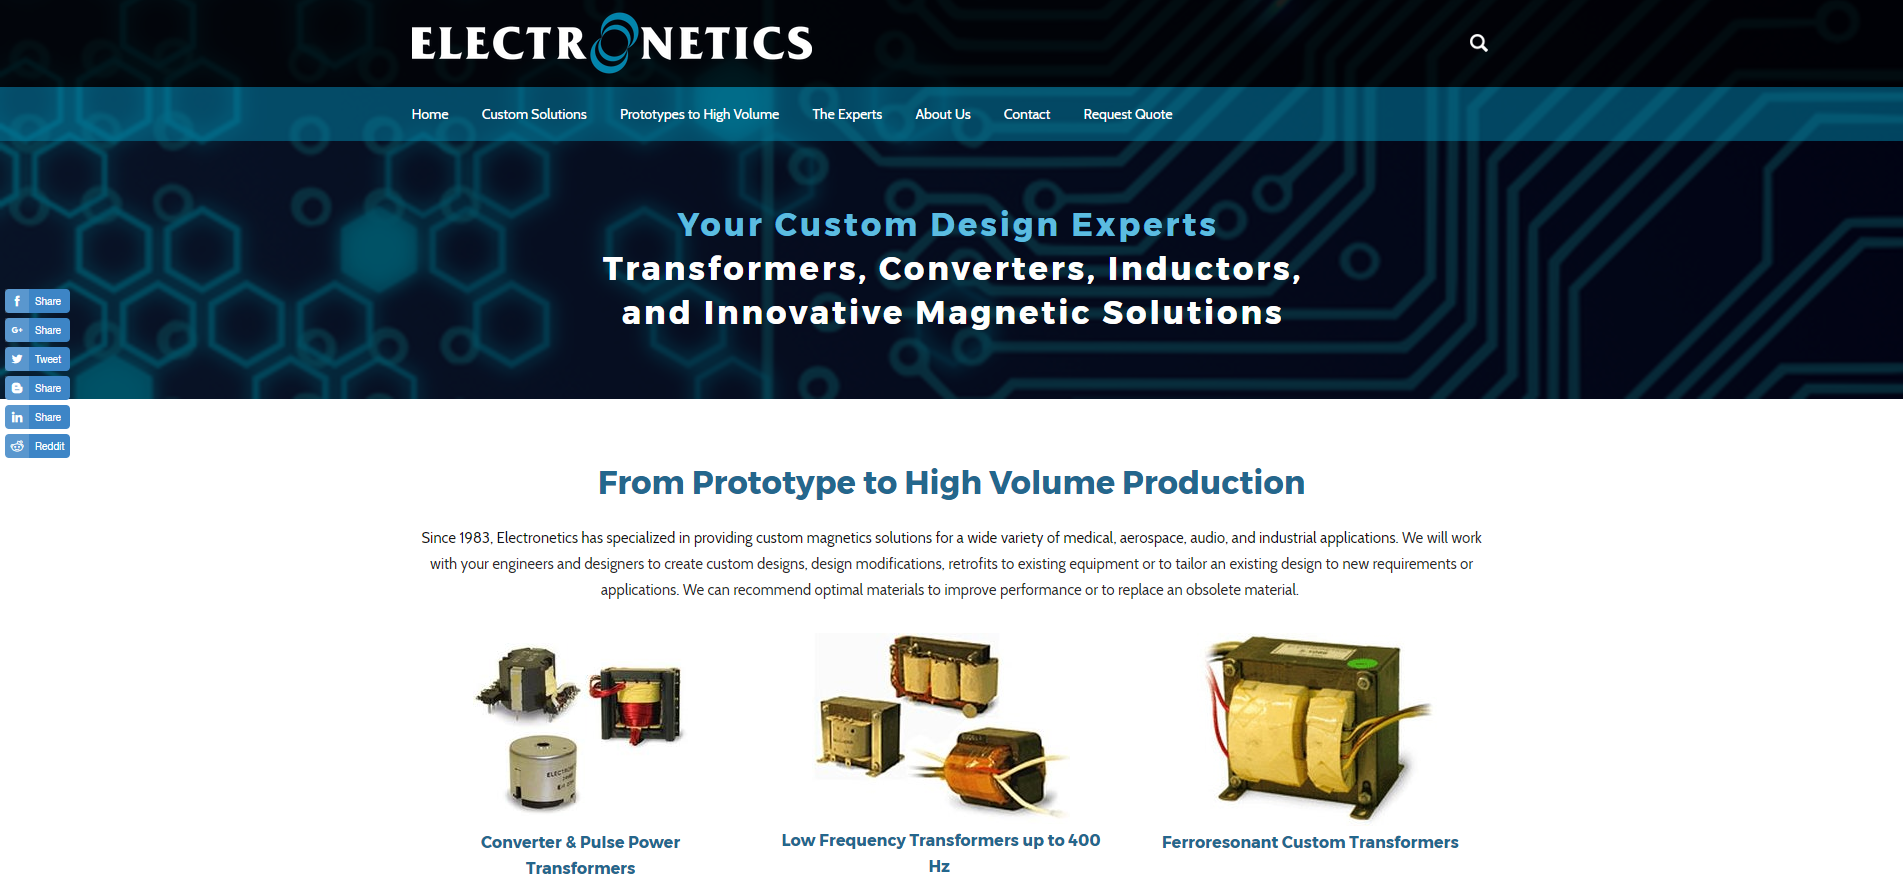 Electronetics Launches New Website with Clean Design